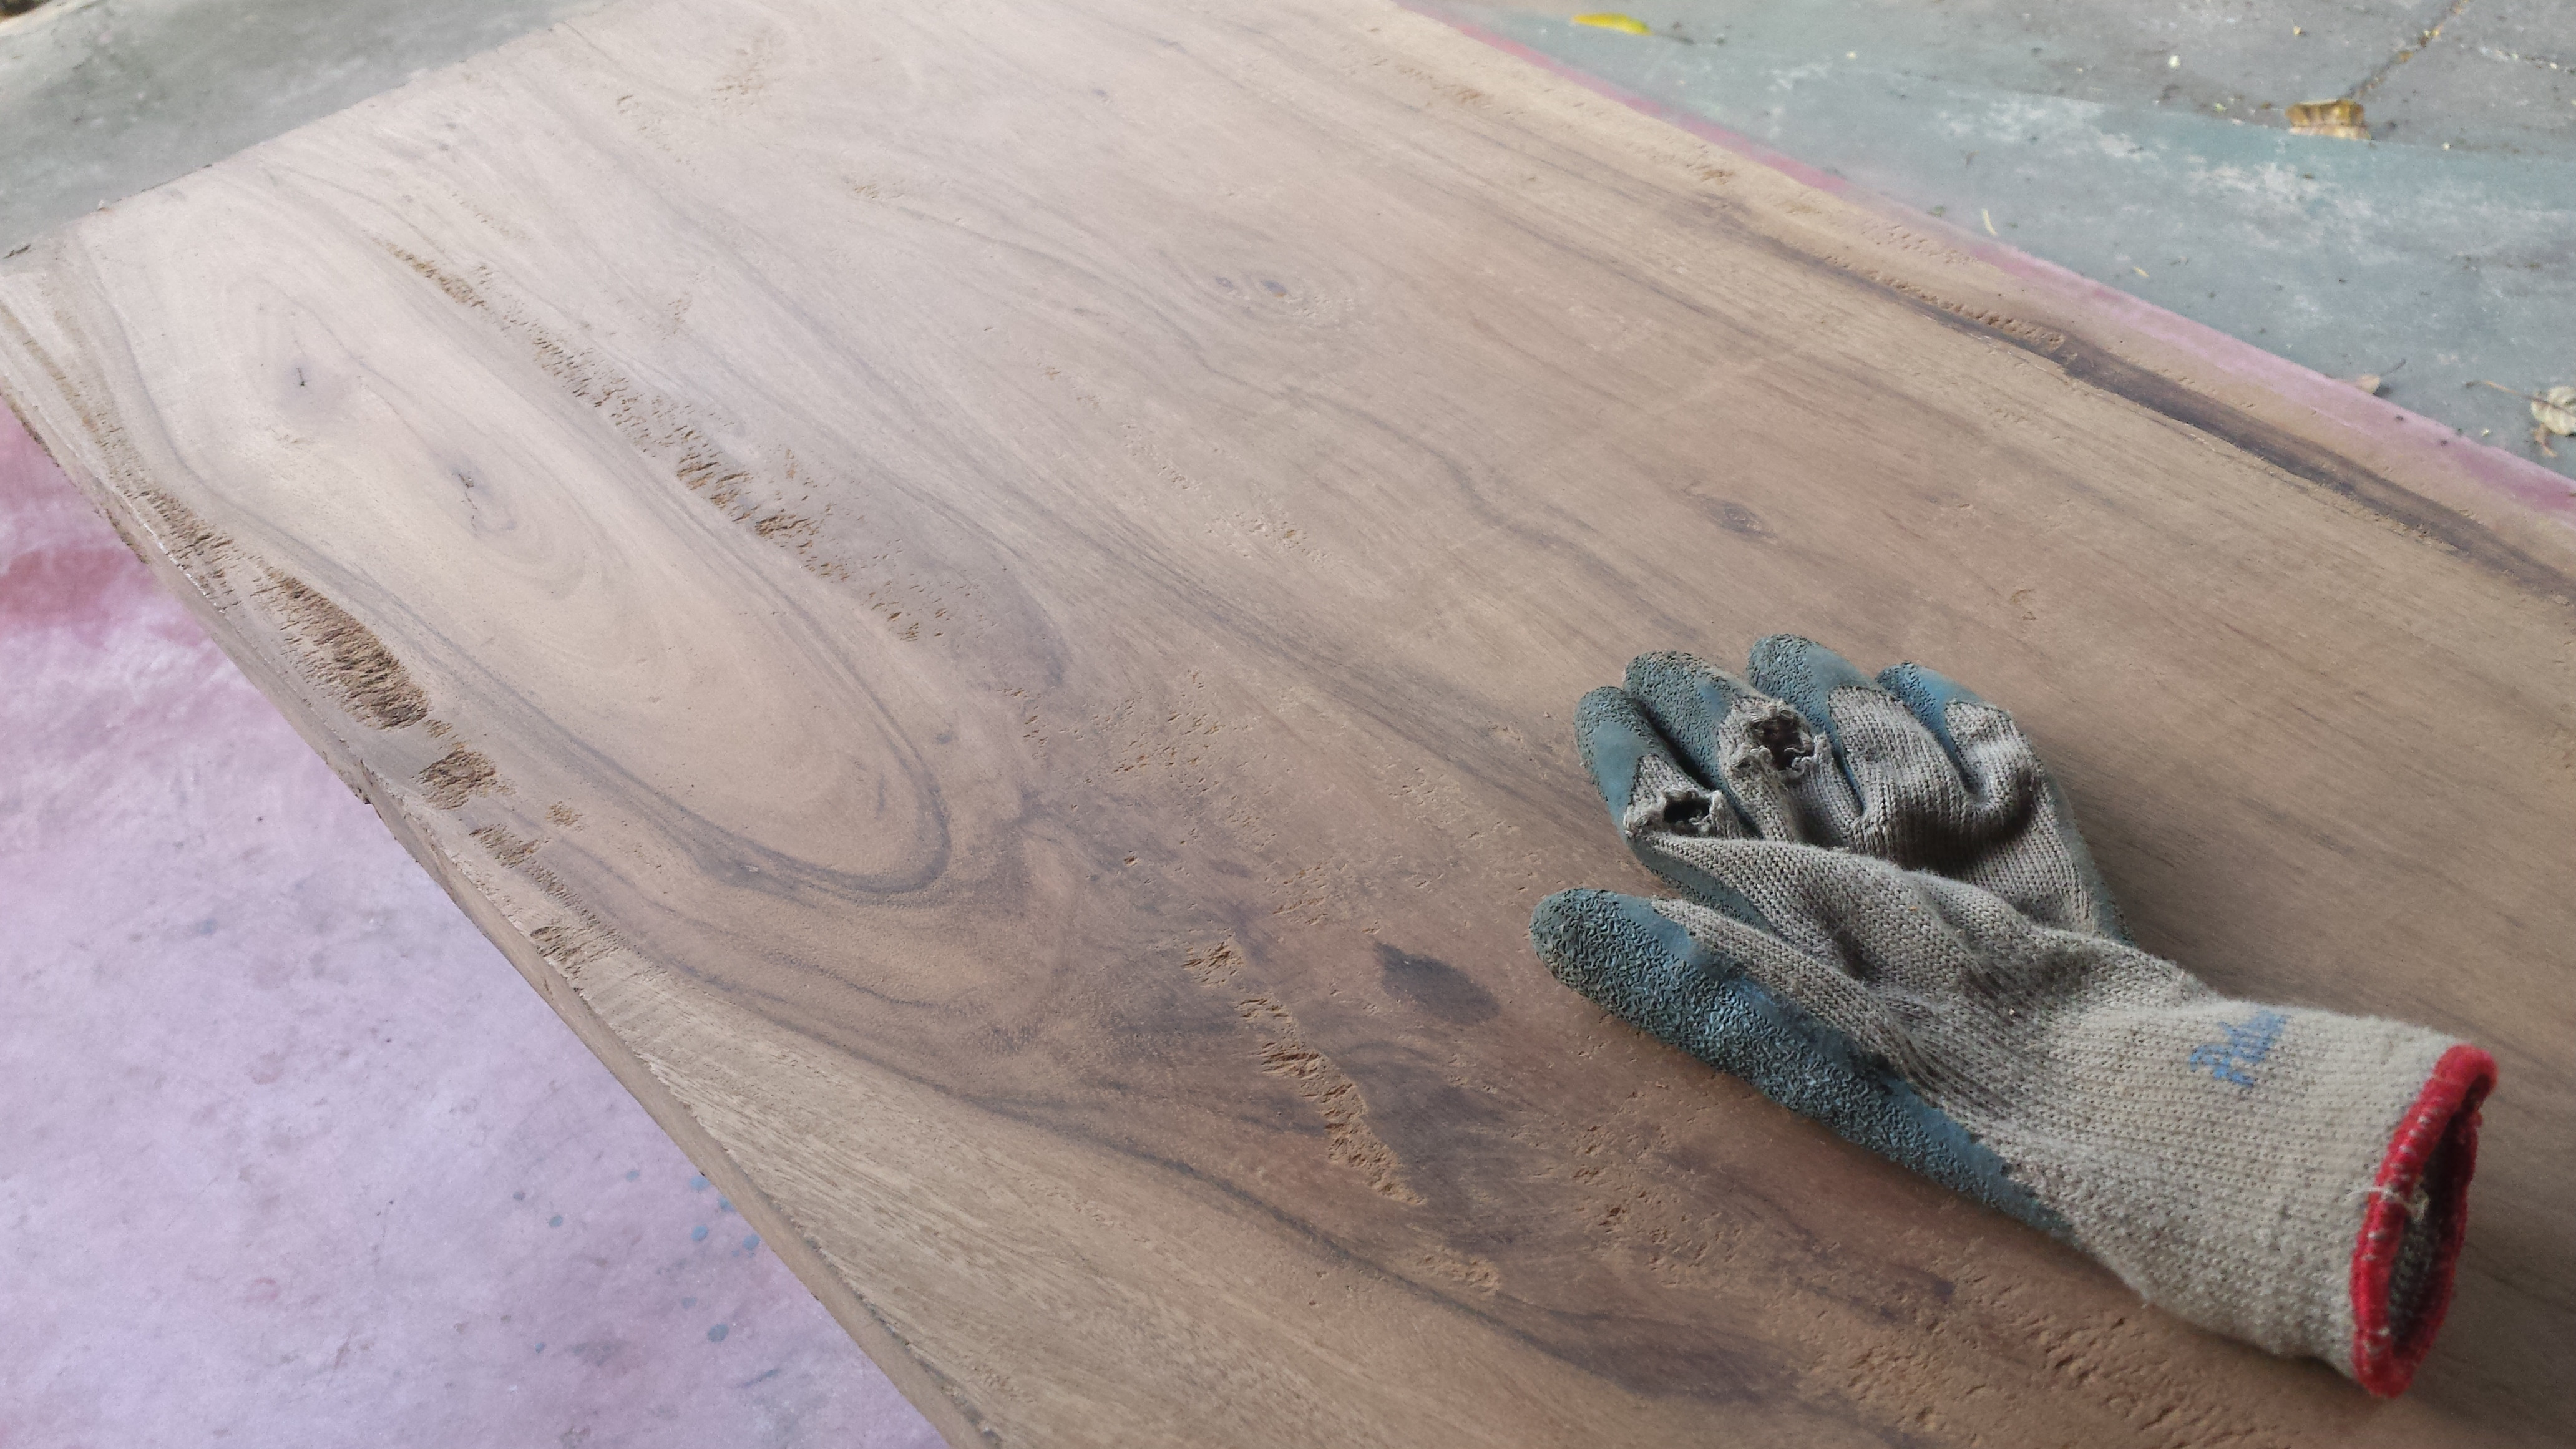 hardwood floor refinishing silver spring md of http imgur com gallery bfdahlm daily http imgur com bfdahlm inside es1joup